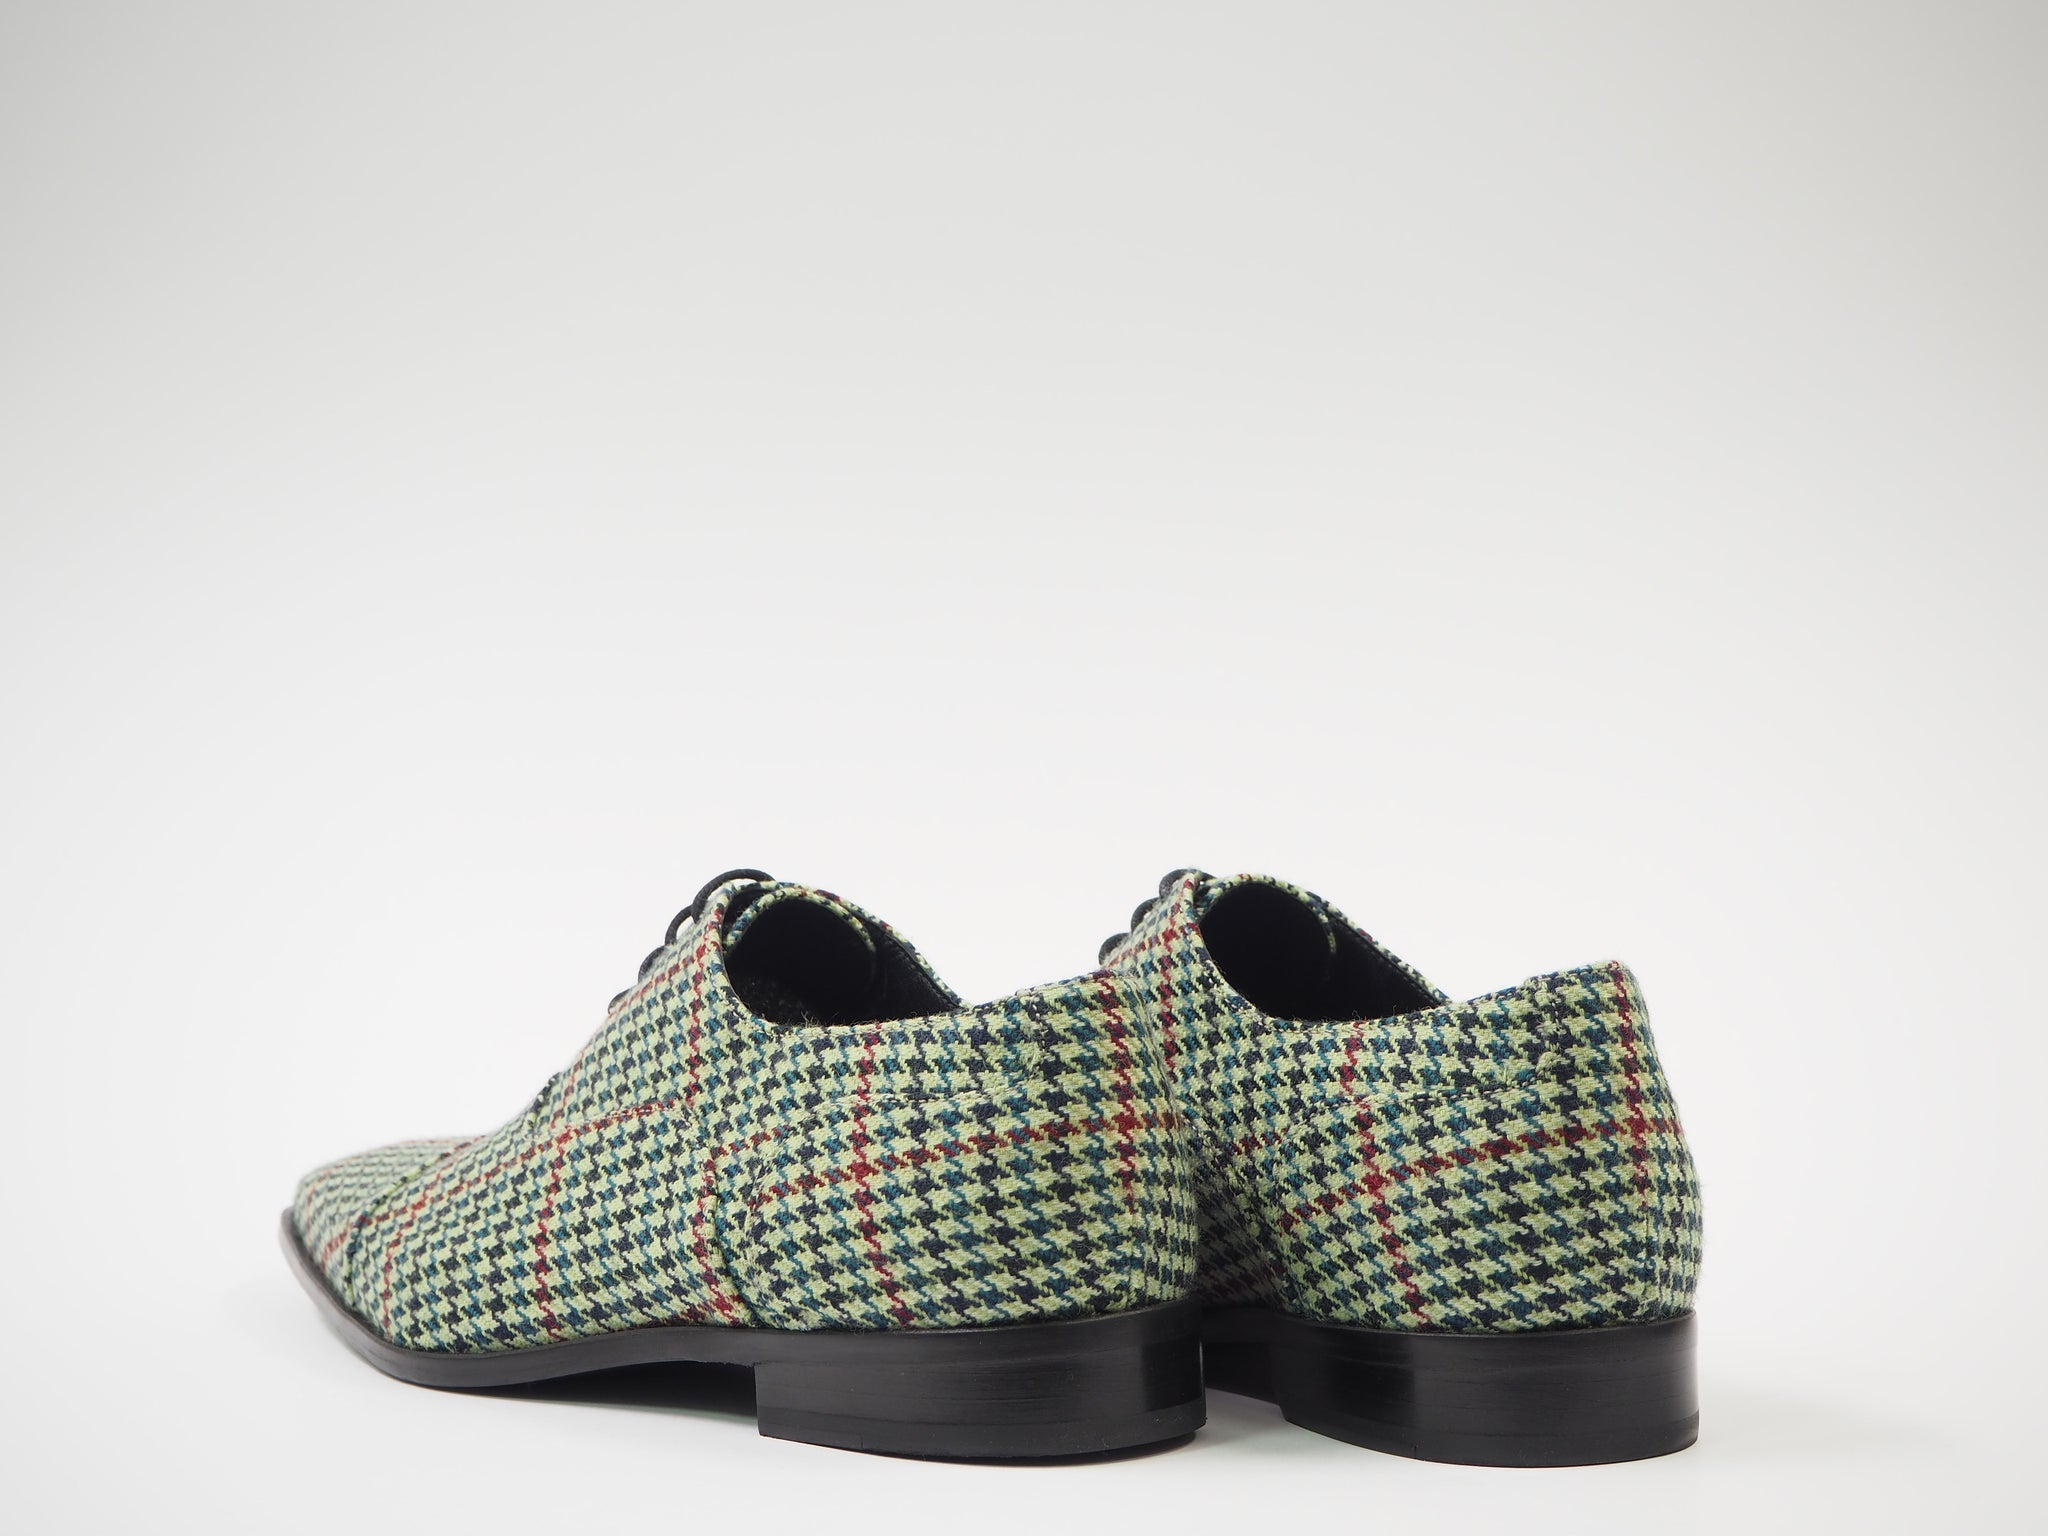 Size 43 - Red & Green Pied de Poule Oxford + Belt